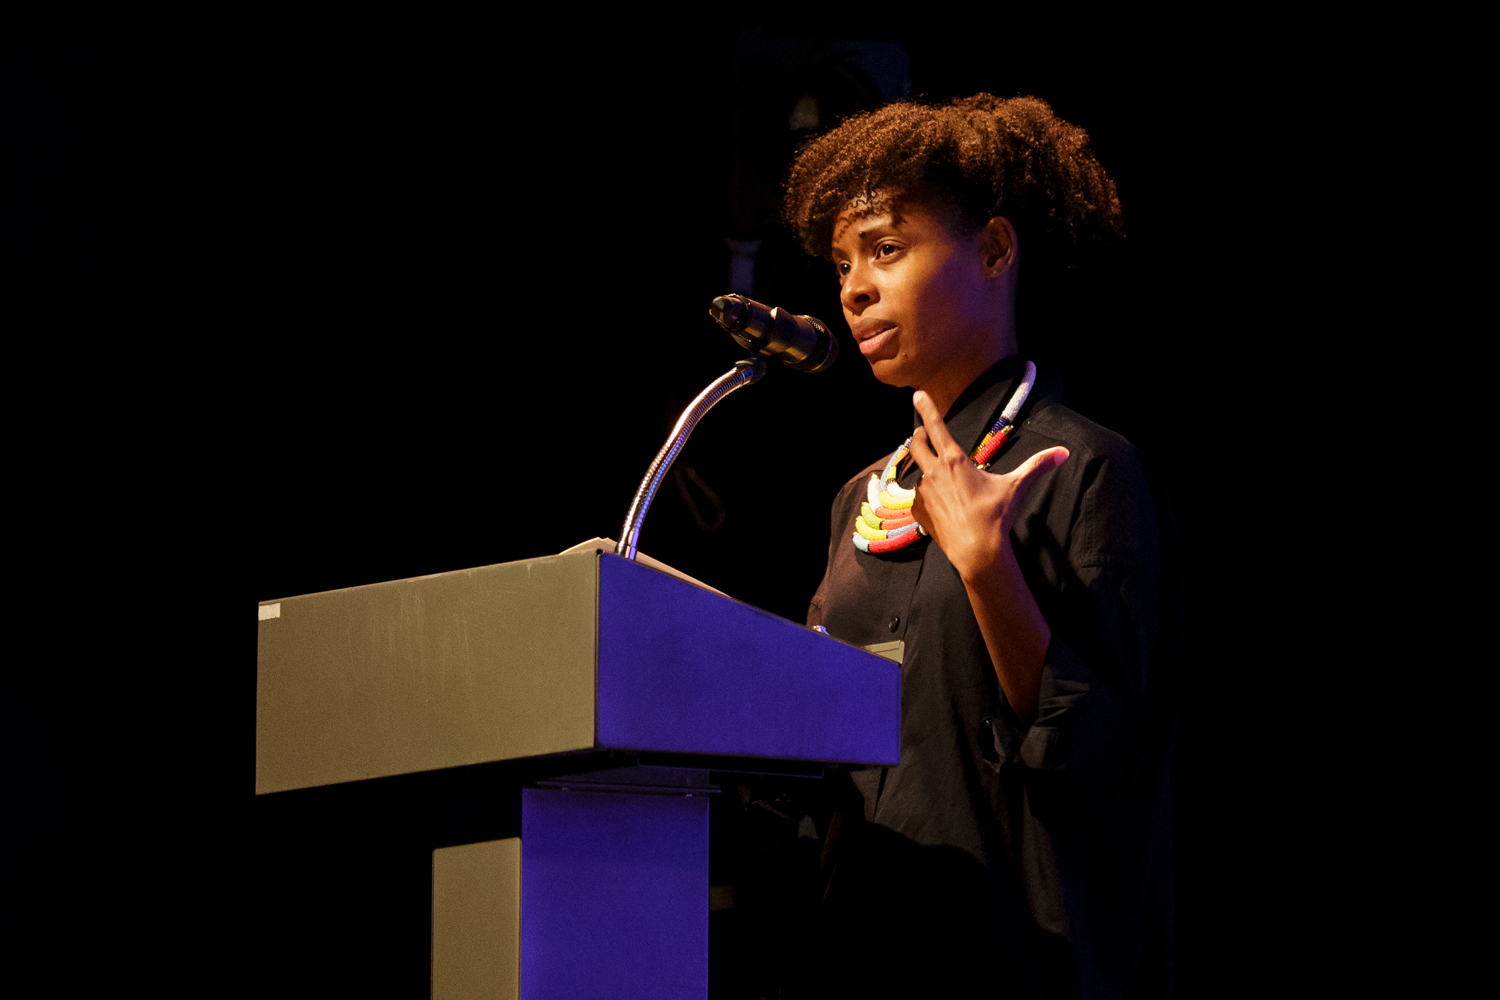 """Poet Nicole Sealey reads her poem """"Candelabra With Heads"""" at Pitt's Center for African American Poetry and Poetics """"Won't You Celebrate With Me"""" event on Saturday evening."""